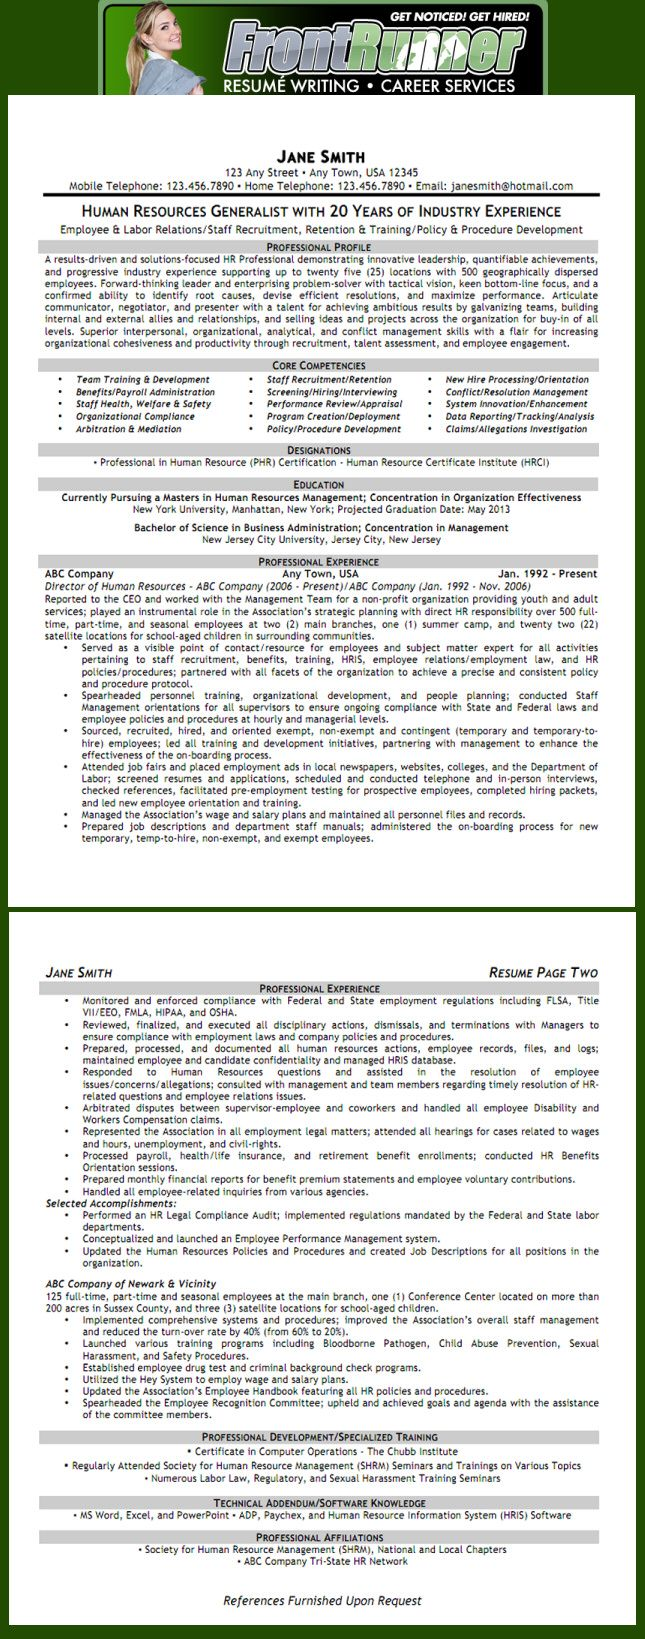 human resource generalist resumes